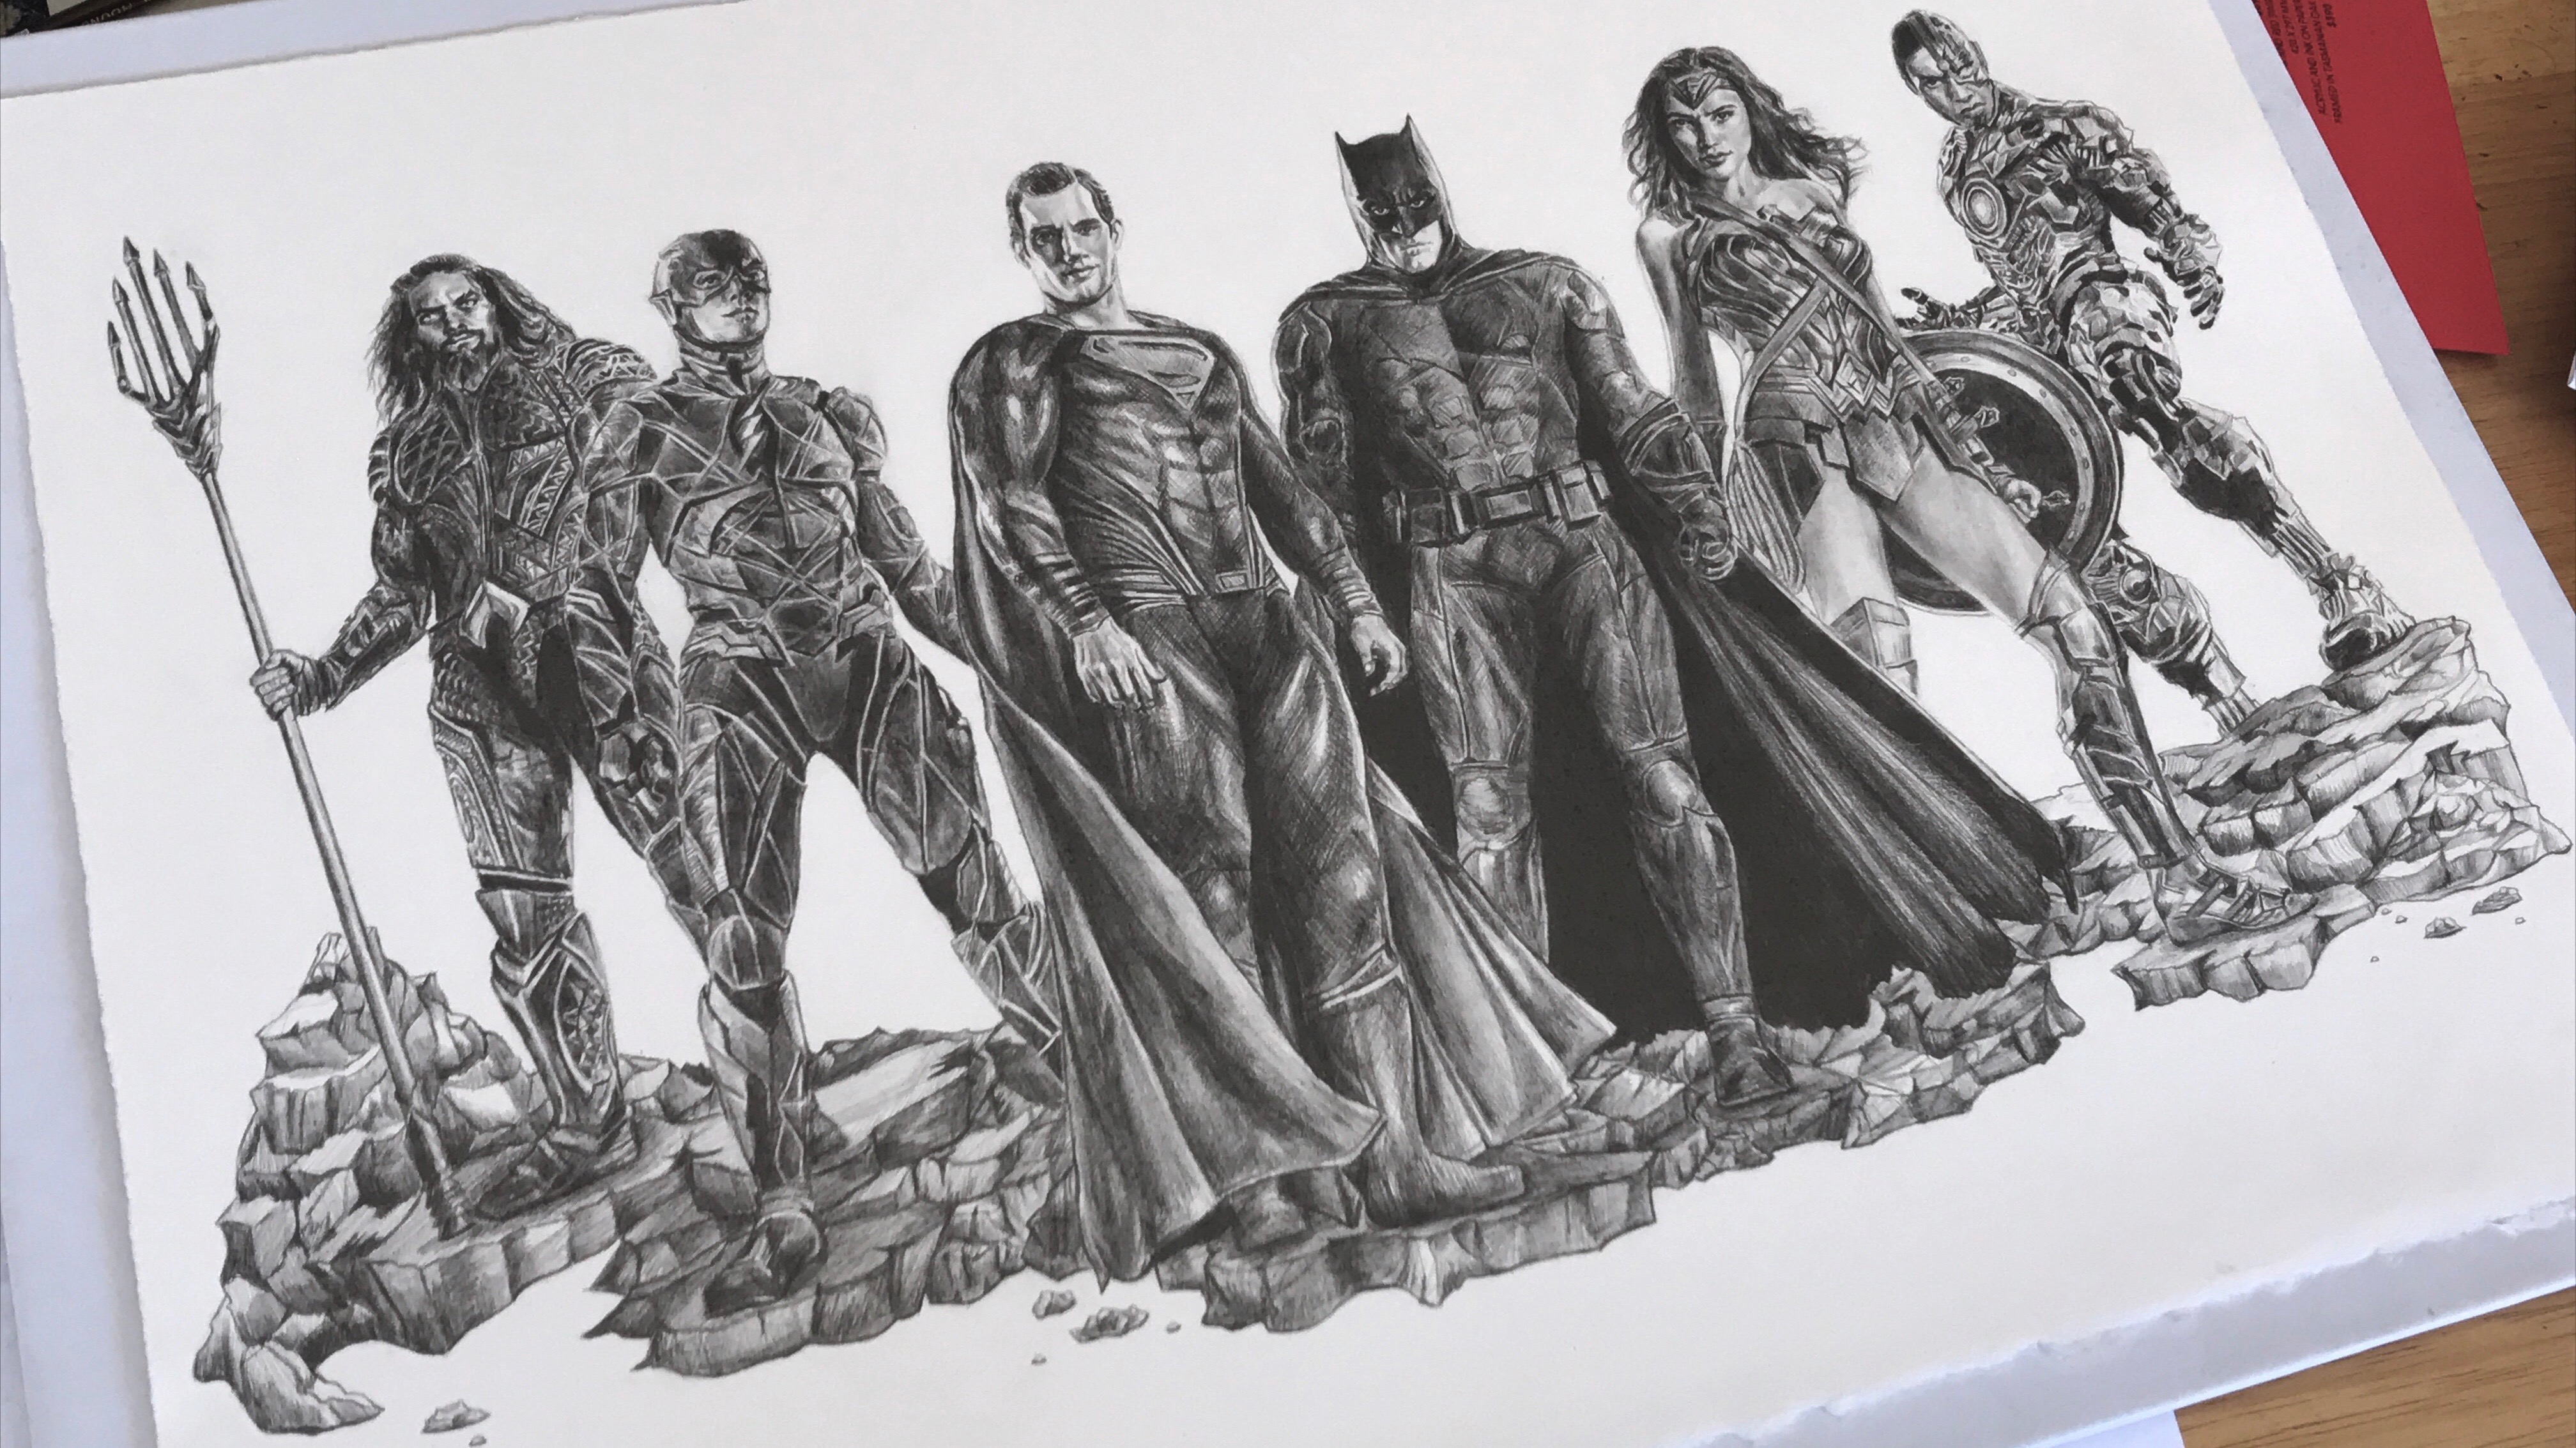 Justice League Jess Southey Many of the assembled writers and journalists had contributed to the abysmal 27 percent. justice league jess southey